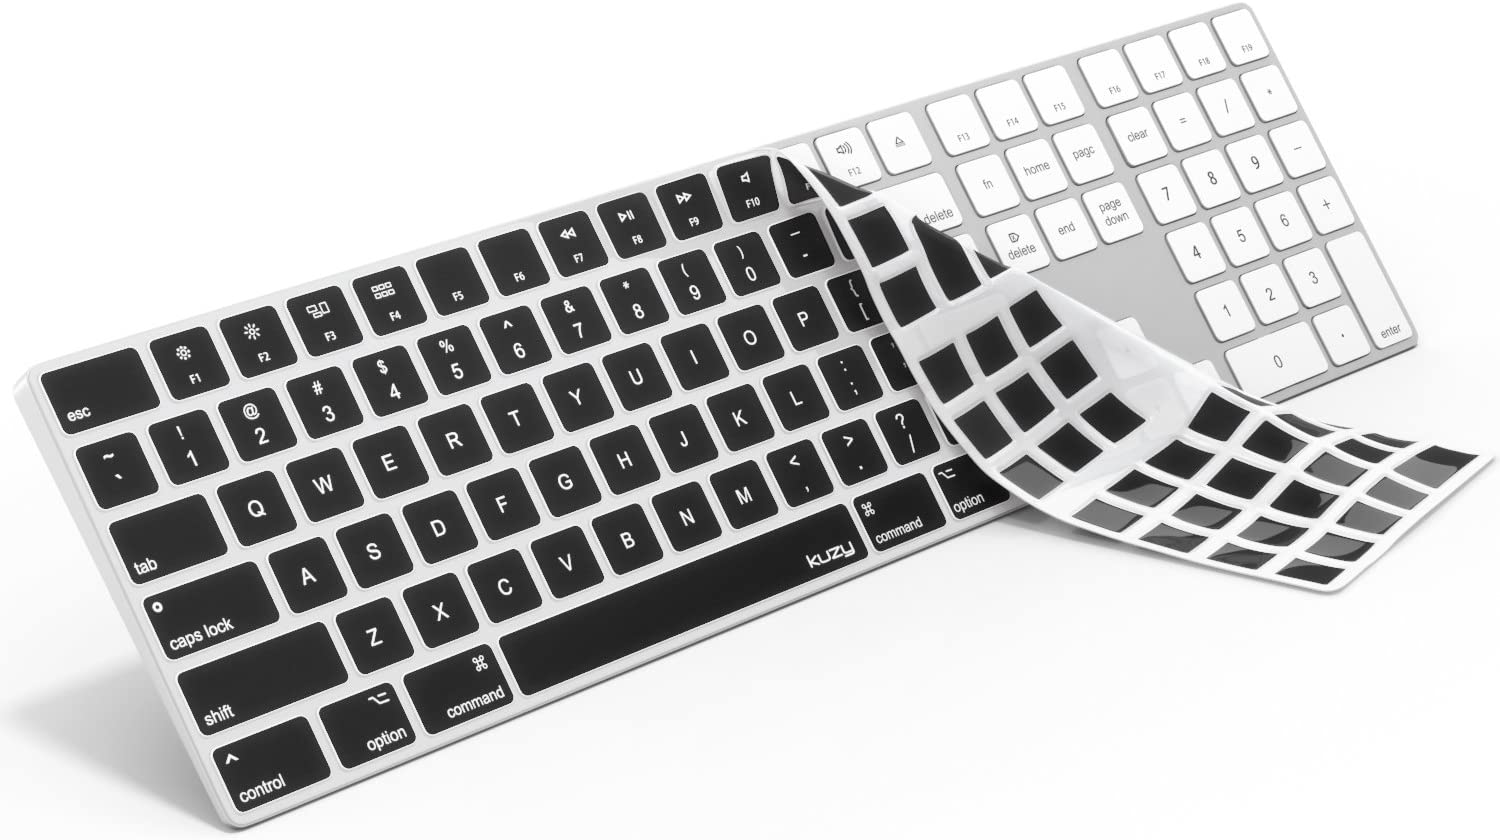 Kuzy - Black Keyboard Cover for Apple Magic Keyboard with Numeric Keypad Model: A1843 - Wireless Bluetooth (Newest Version) Skin Silicone for iMac - Black